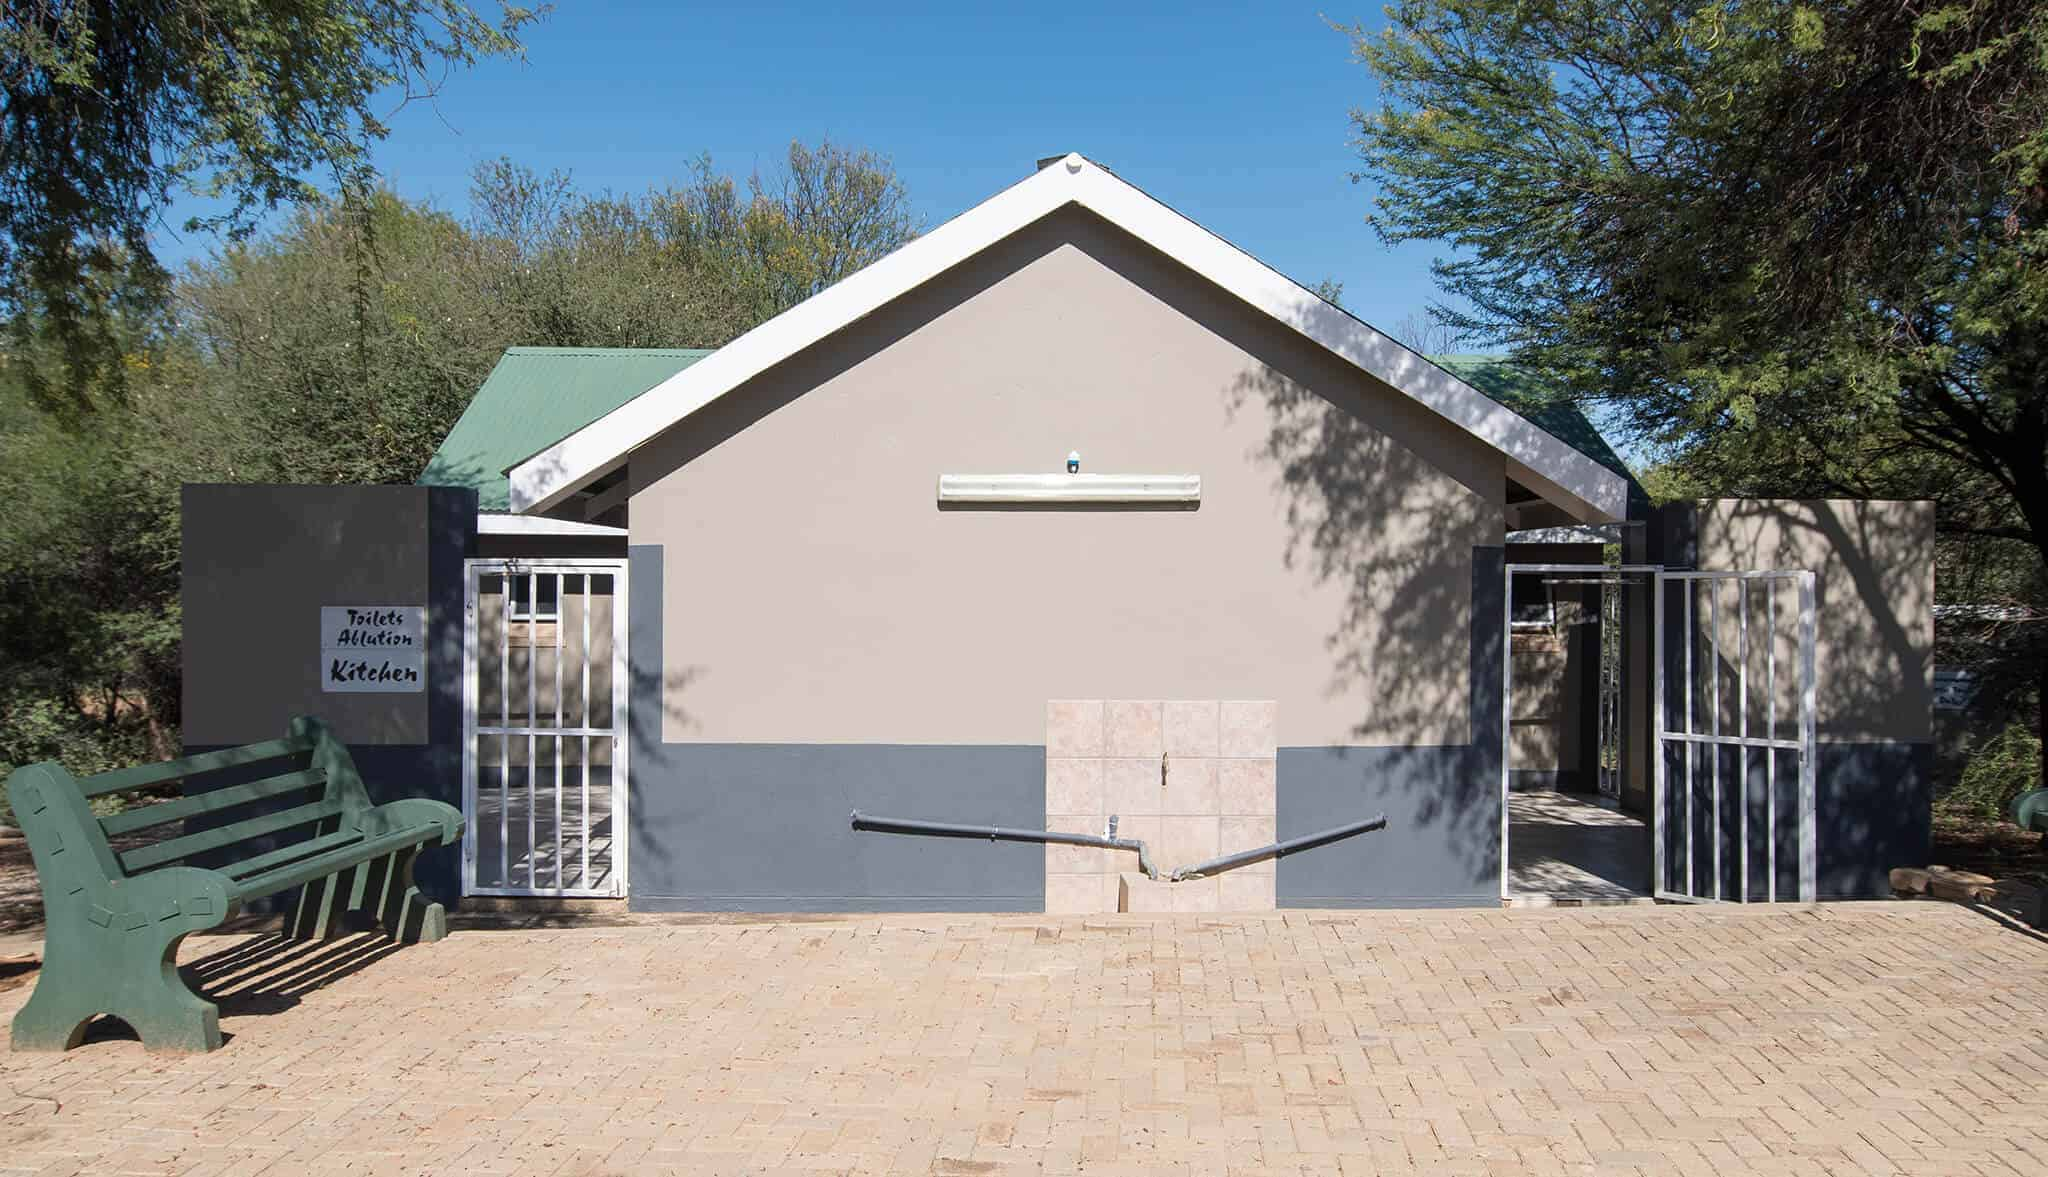 Standard camping & caravanning sites | Communal bathroom & kitchen facilities | Camping & caravanning sites in Windhoek | Arebbusch Travel Lodge